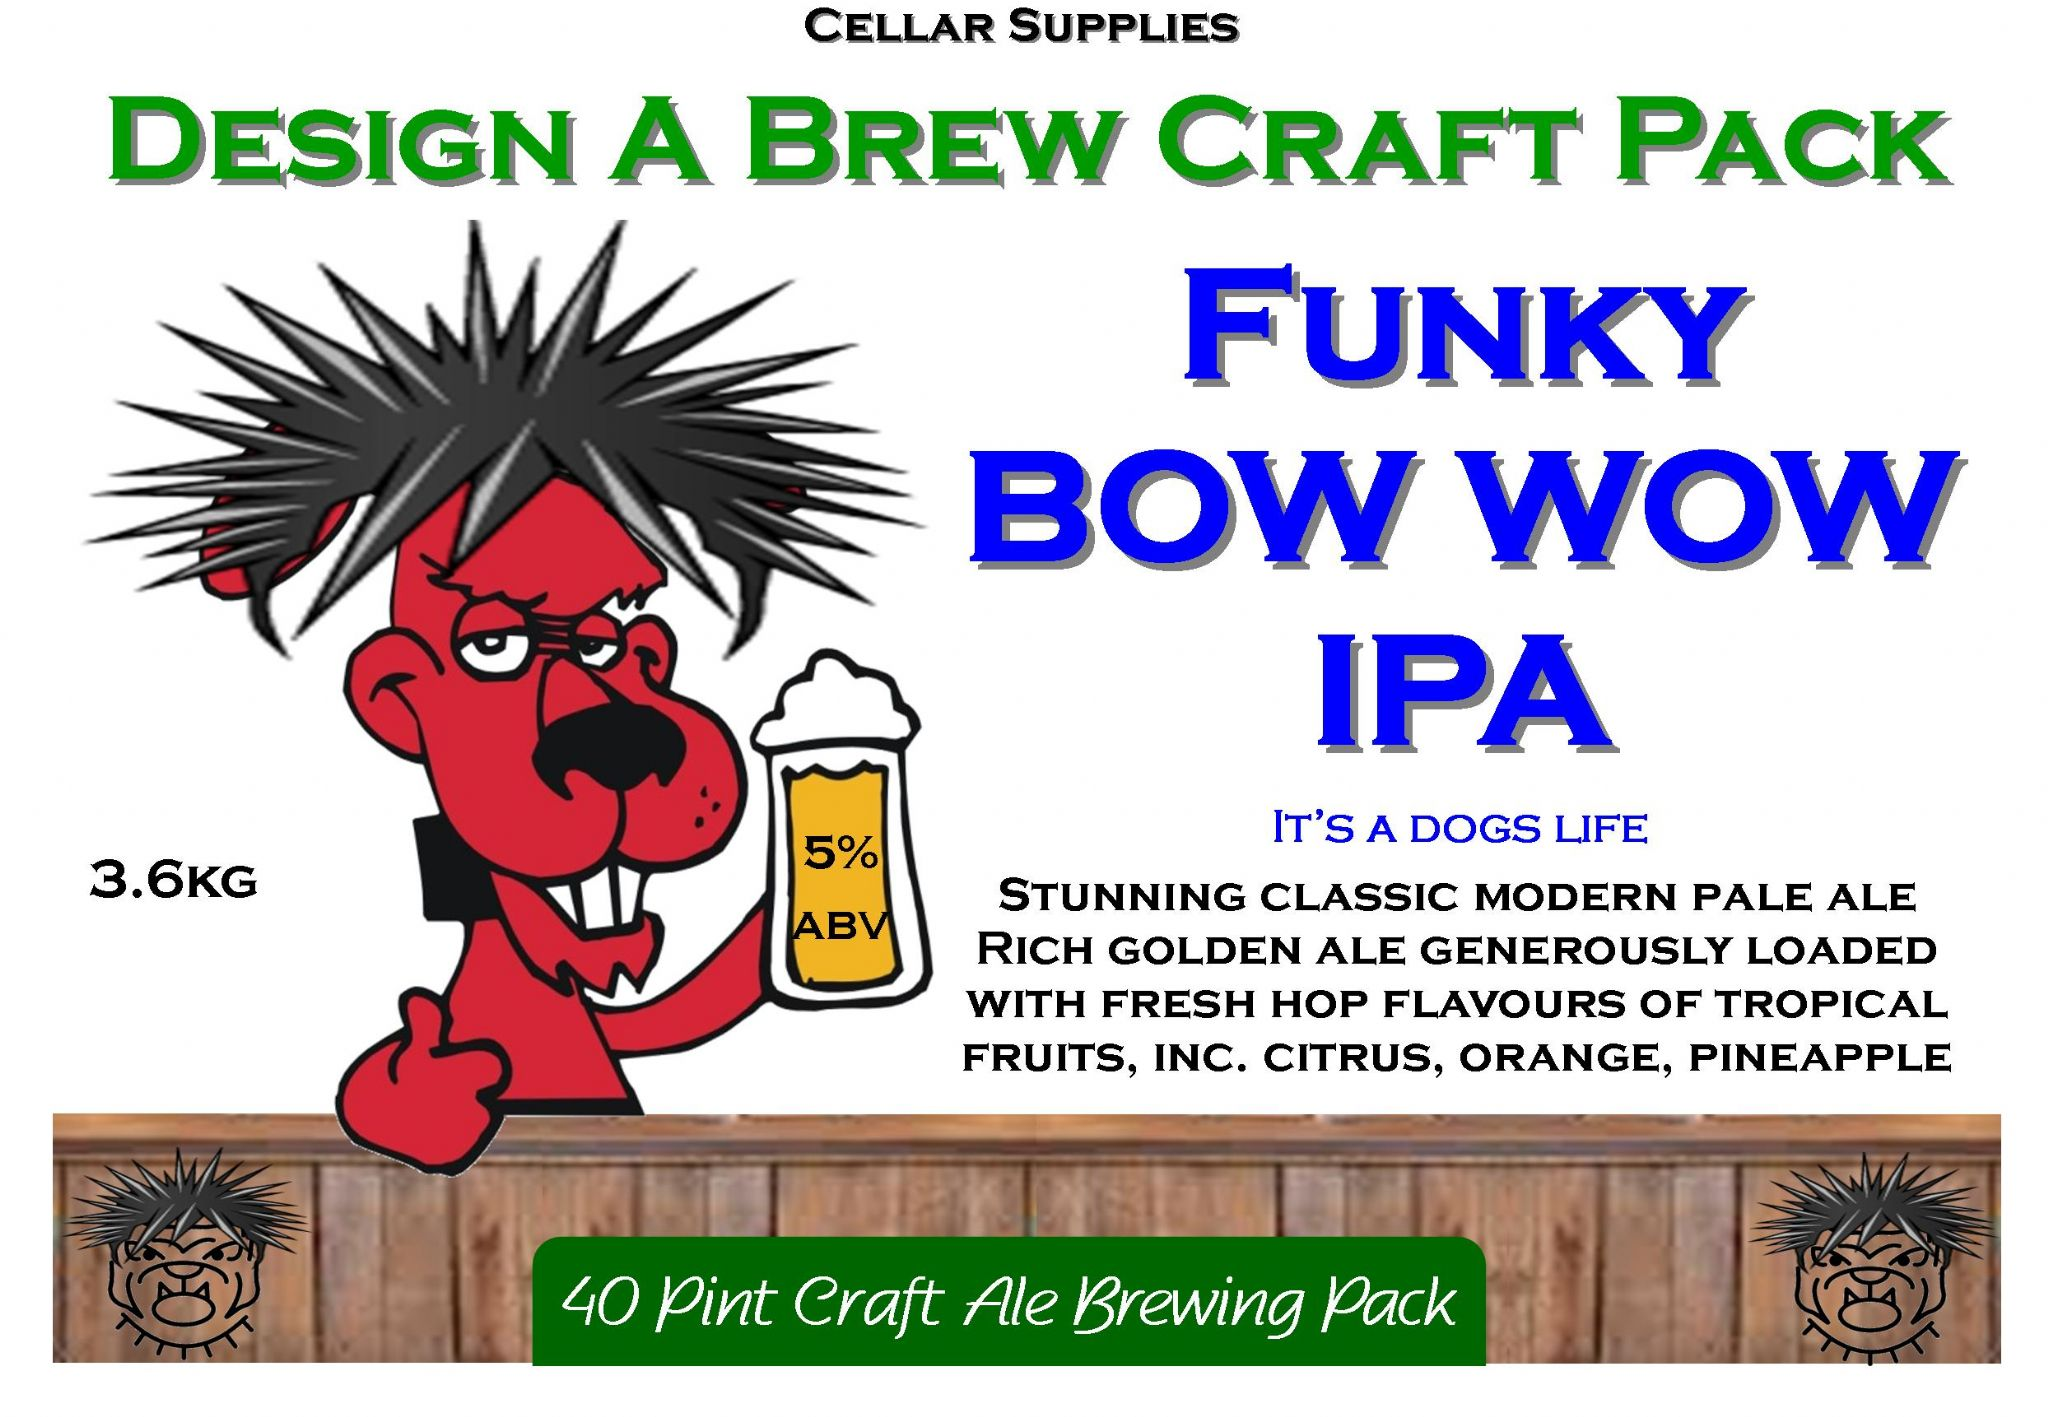 Design A Brew Craft Packs